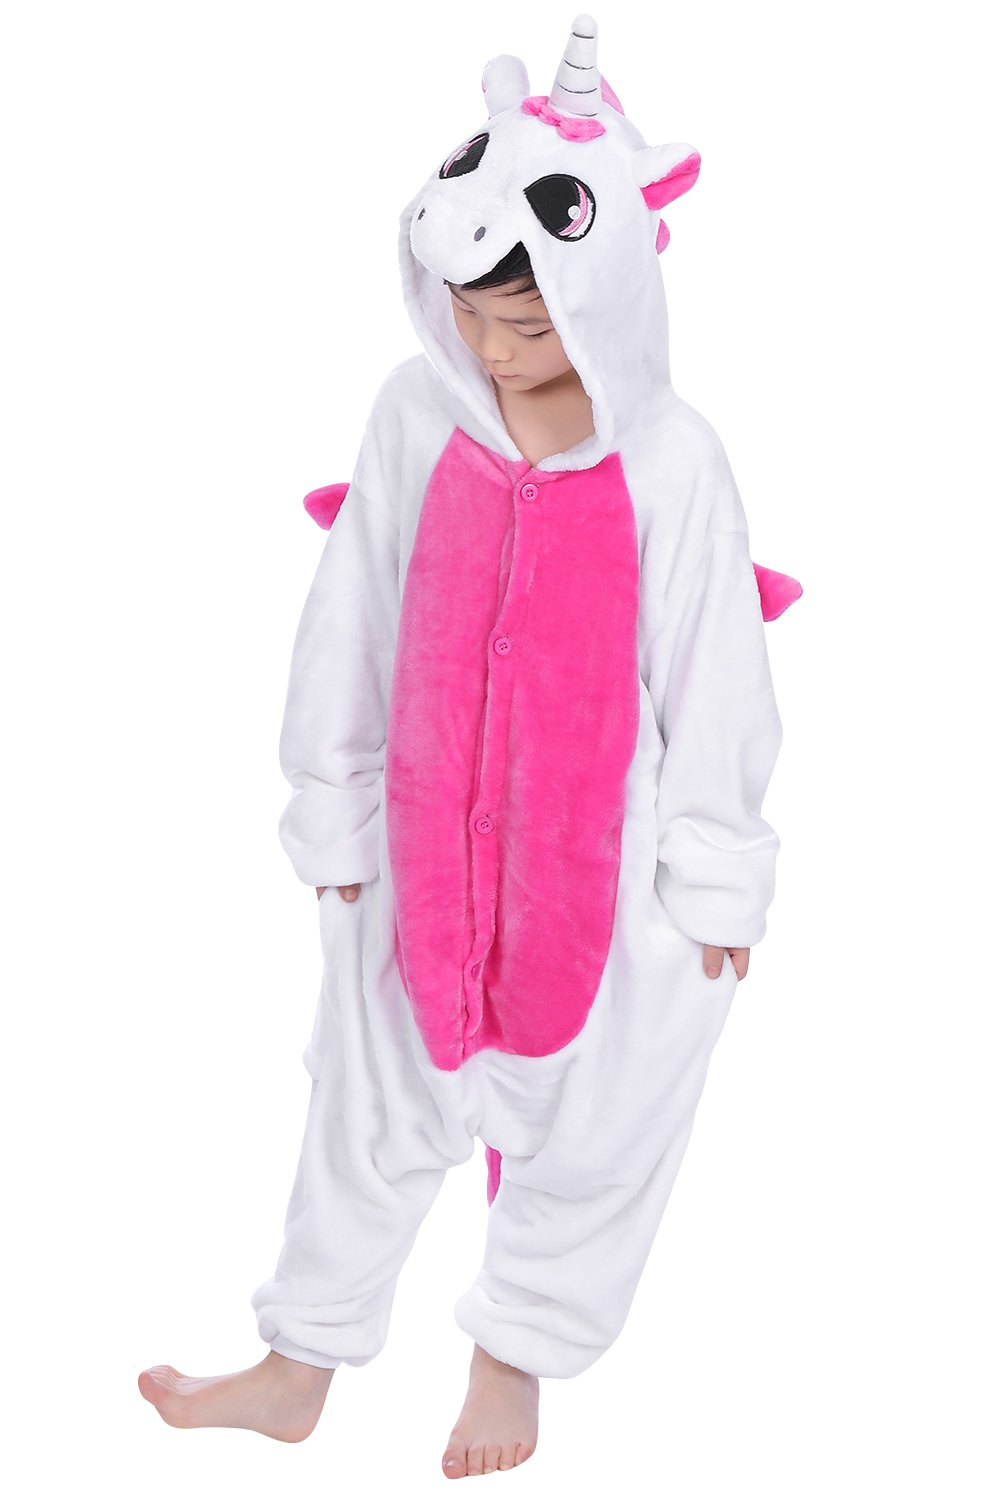 Dolamen Kids Unisex Onesies Kigurumi Pyjamas, Girls Boys Flannel Animal Sleepsuit Nightwear Hoodie, Halloween Costume Clothing, Xmas Onesie, Cosplay & Party